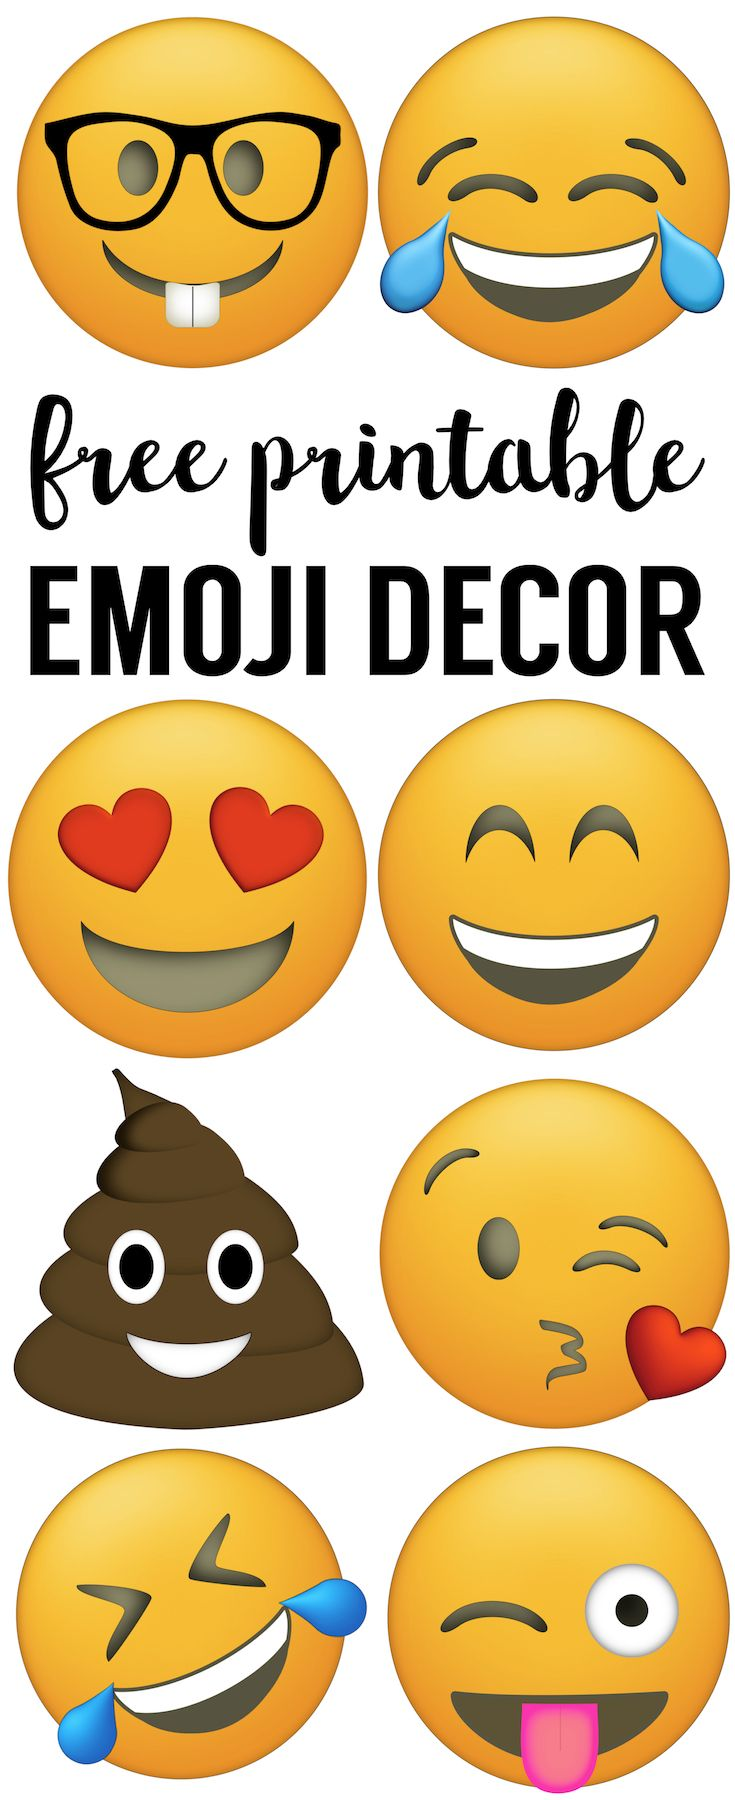 Emoji Faces Printable Free Emoji Printables Paper Trail Design Emoji Party Decorations Emoji Birthday Party Emoji Party